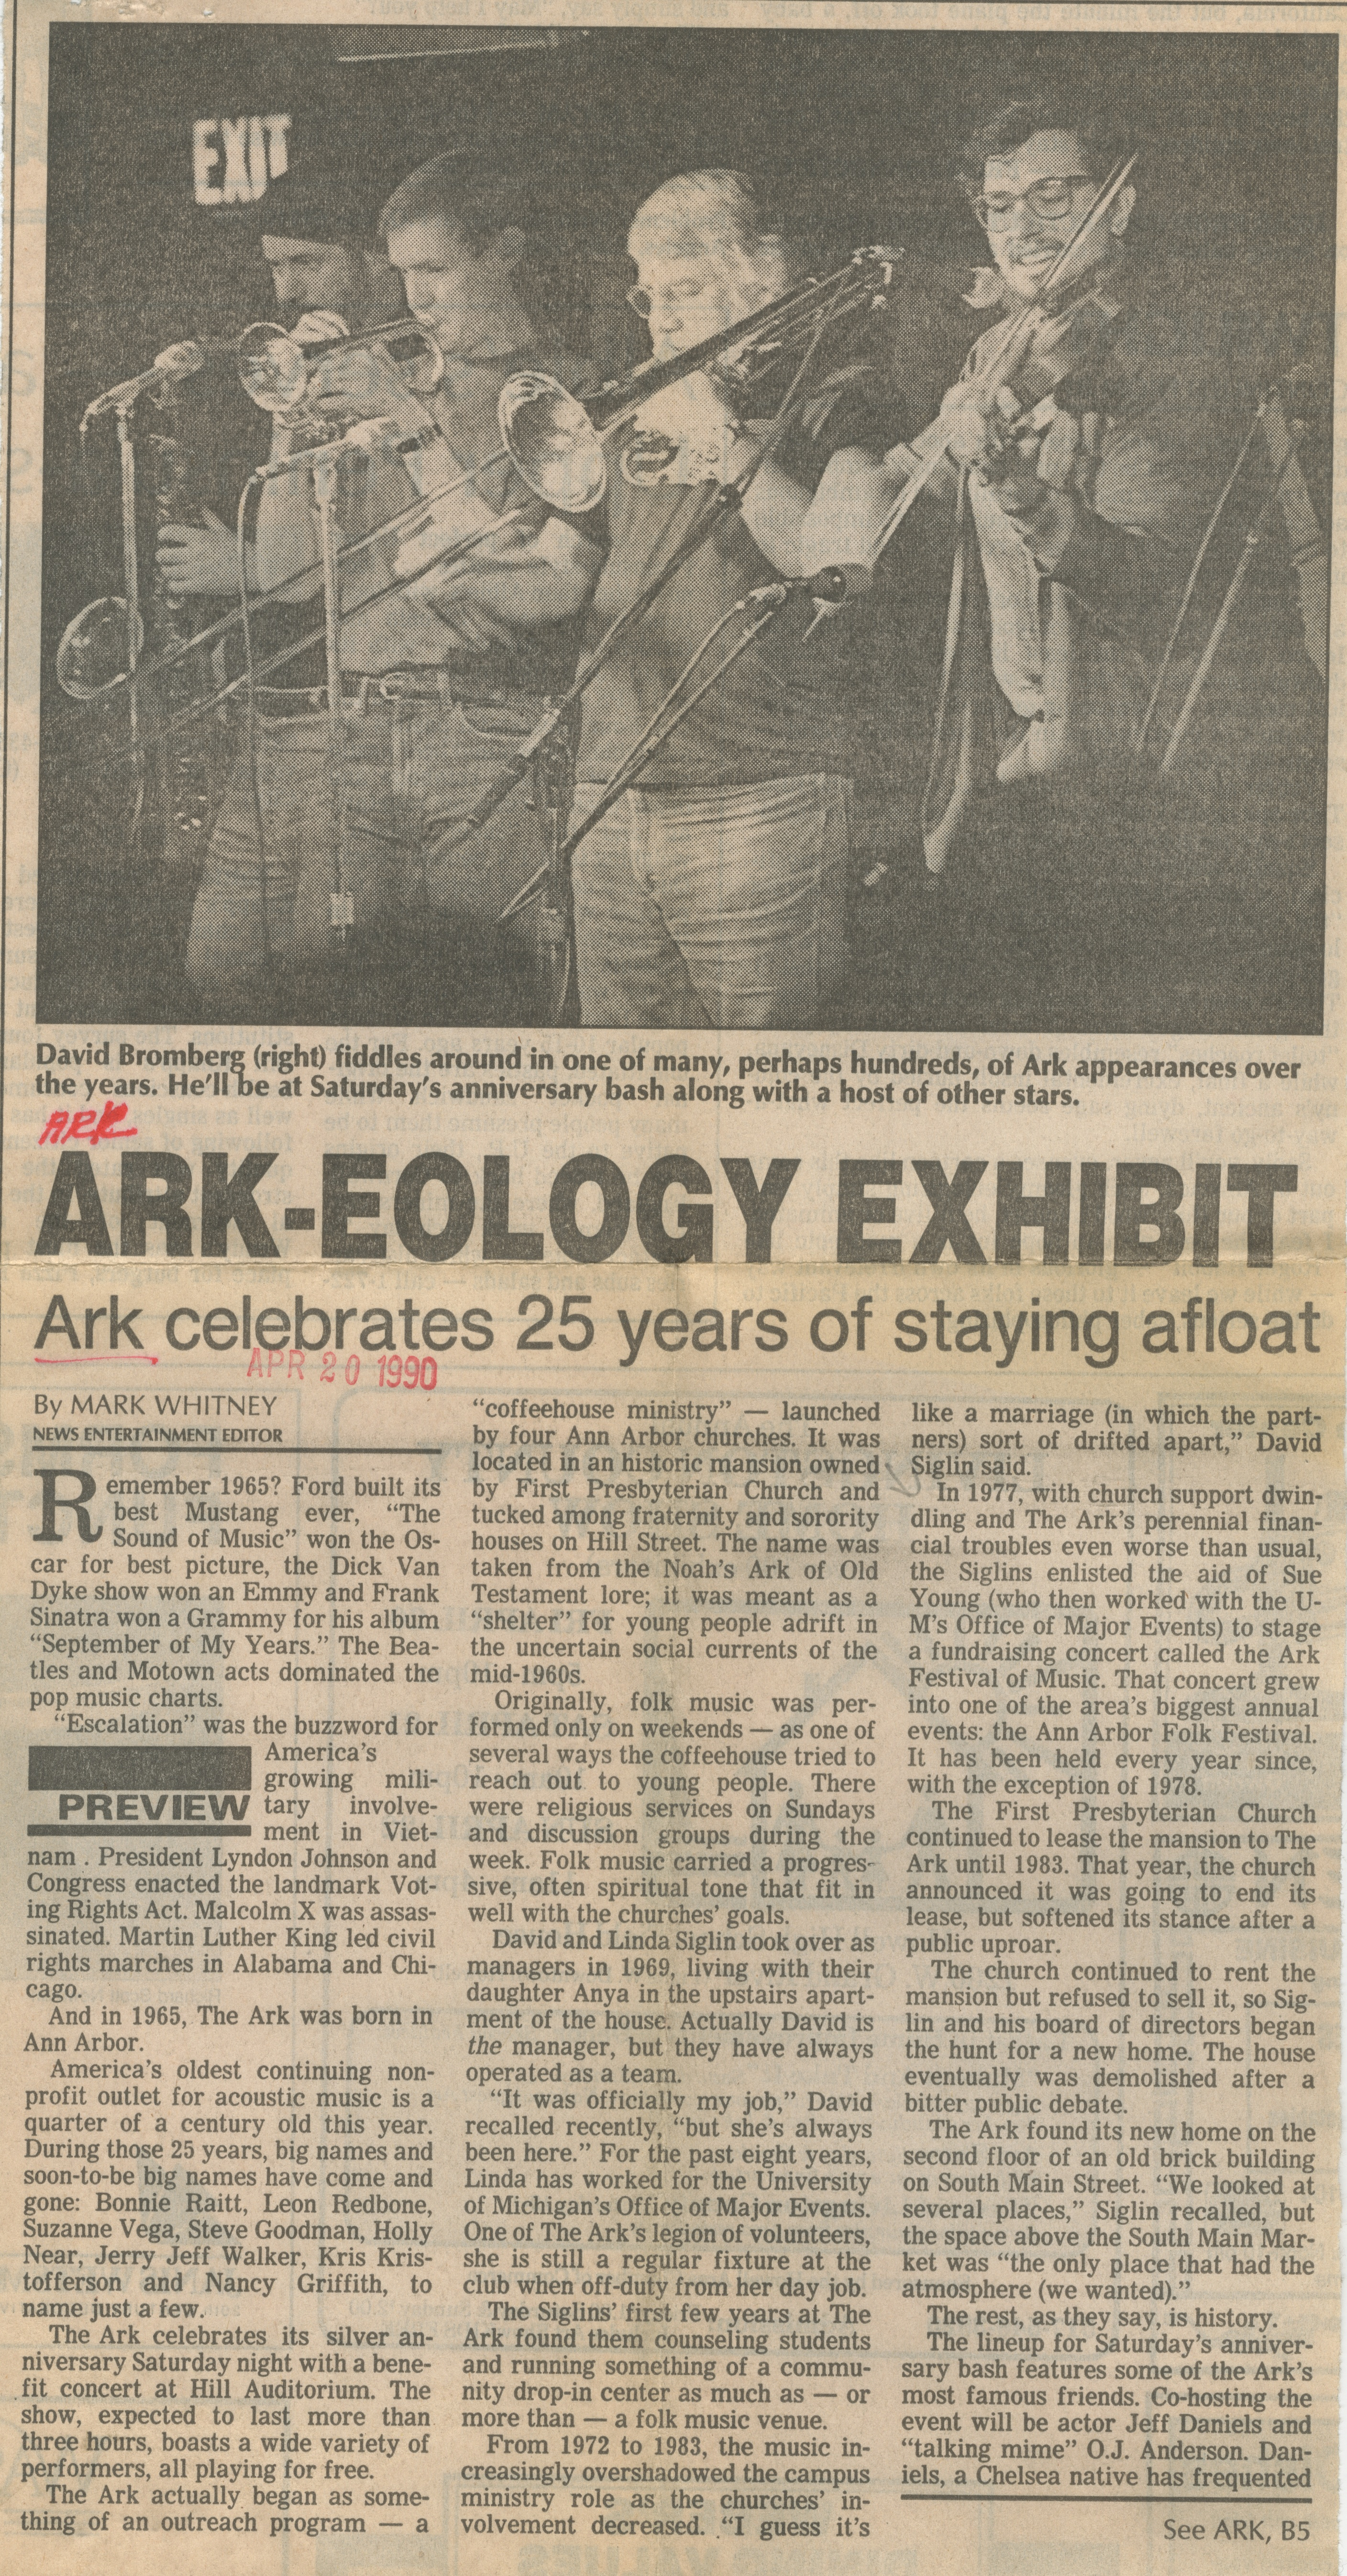 ARK-EOLOGY EXHIBIT image